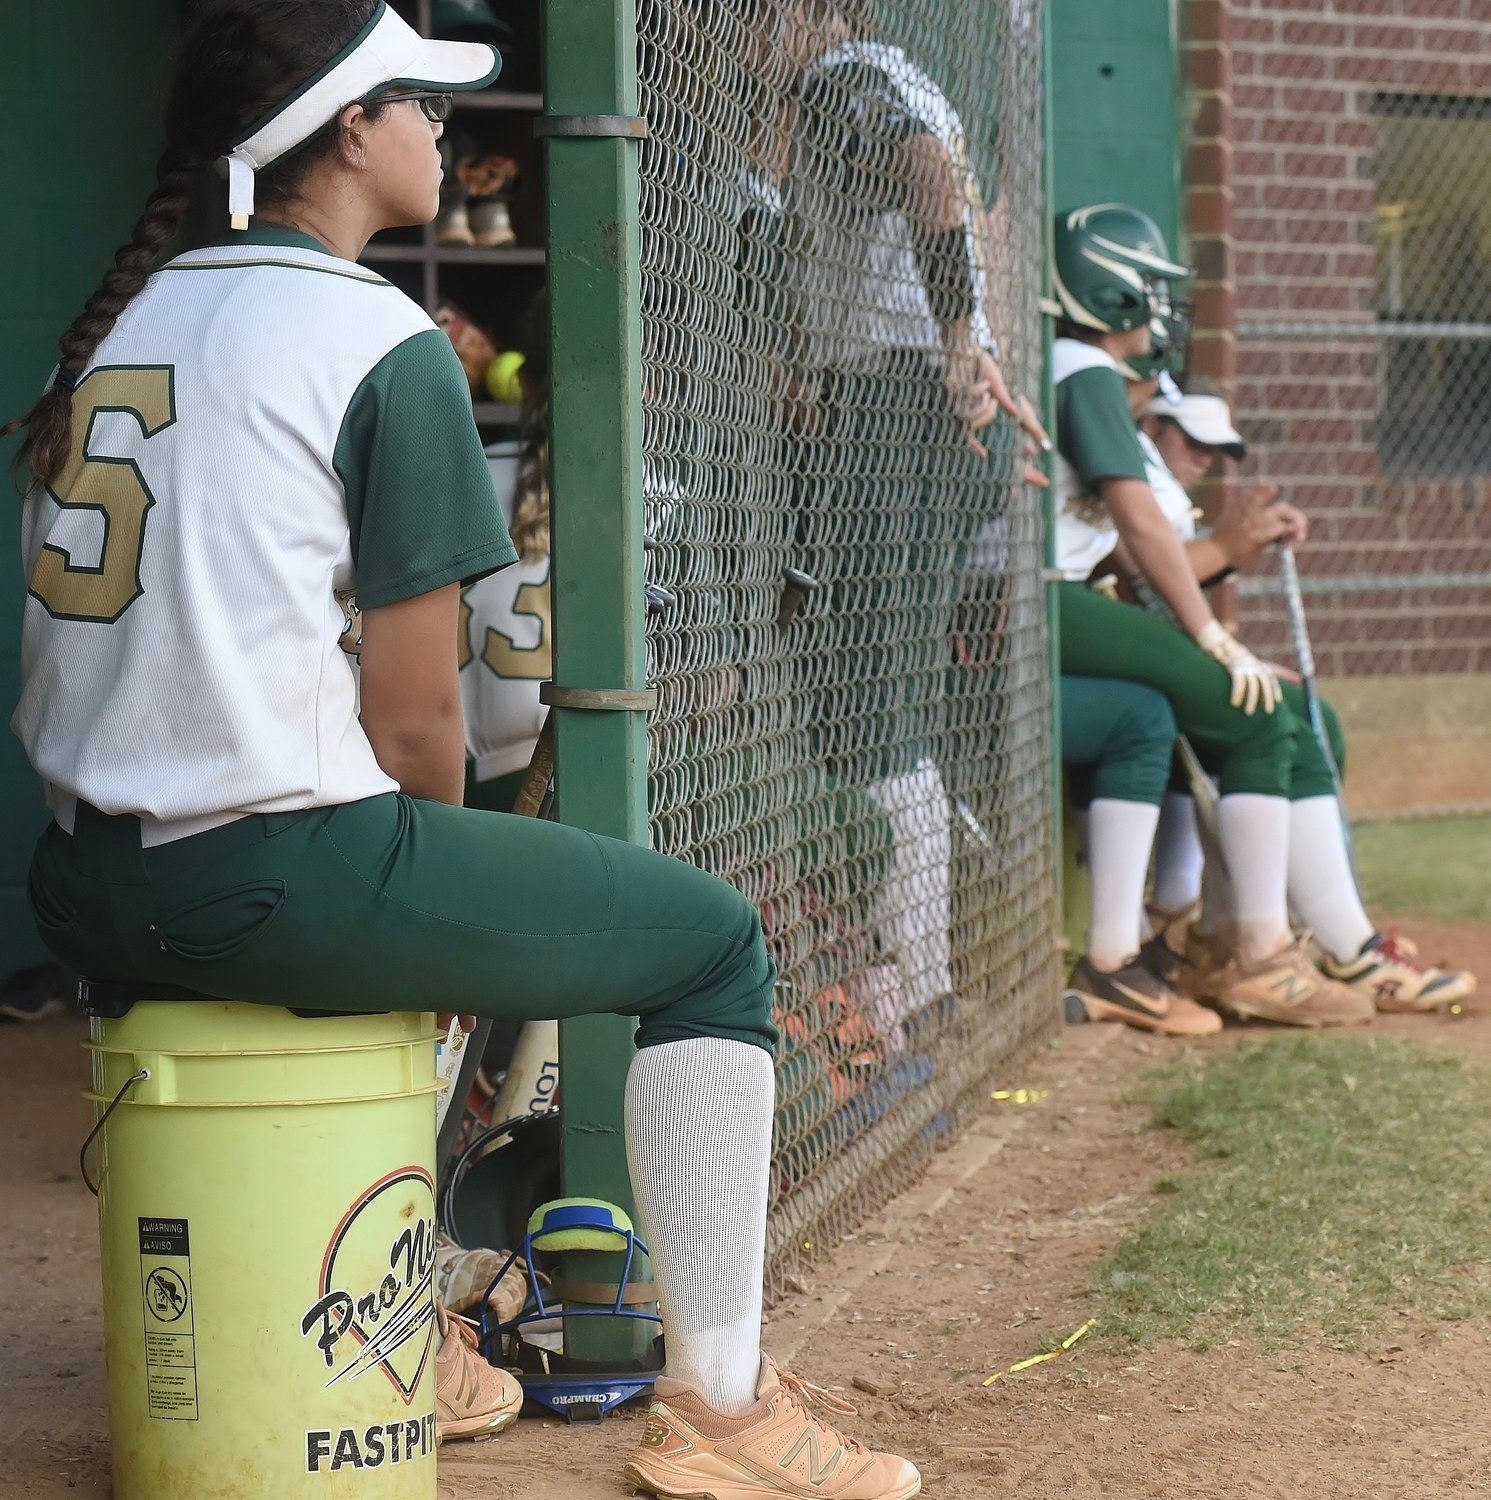 Adairsville's Makayla Wade, left, and several of her teammates wait and watch Tuesday afternoon as the umpires and coaches for the host Tigers and visiting Calhoun determine the proximity of lightning to the field, which caused the game to be stopped in the first inning. The contest was ultimately postponed until 5:30 Wednesday.